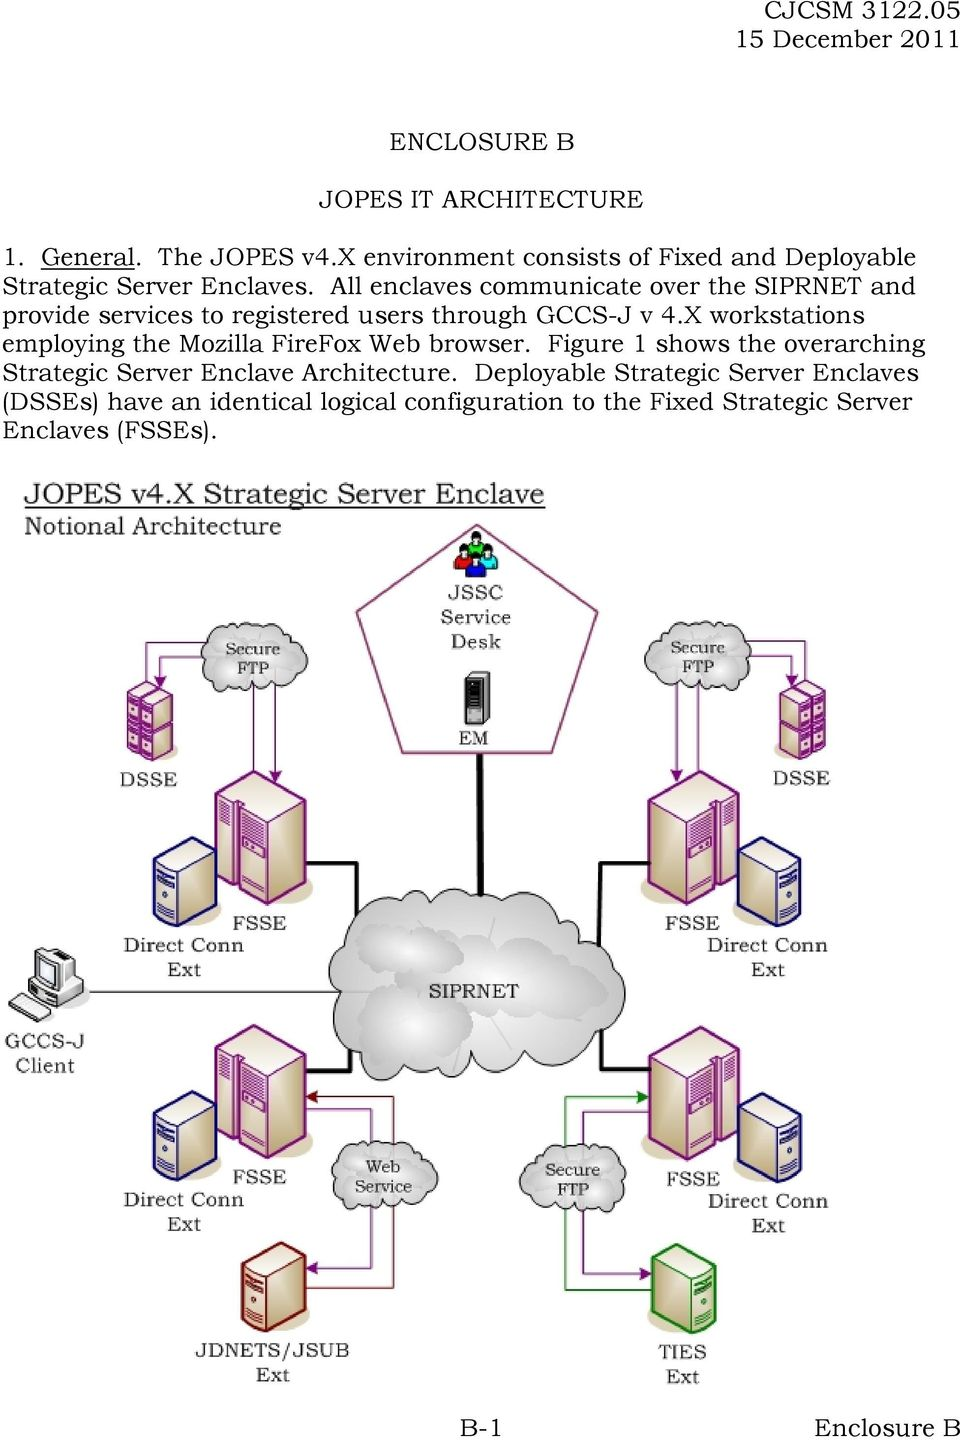 All enclaves communicate over the SIPRNET and provide services to registered users through GCCS-J v 4.